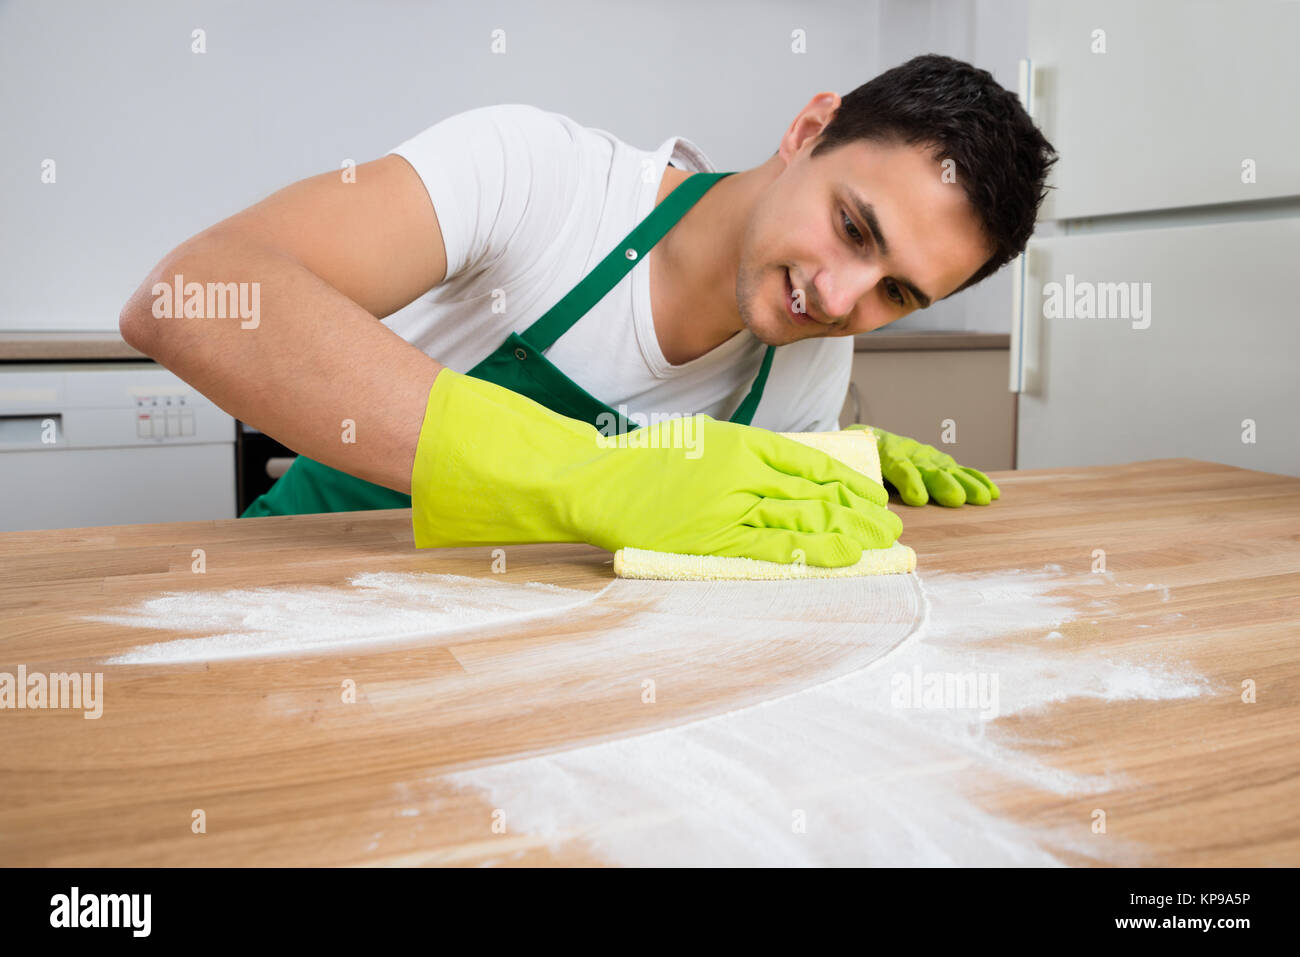 Cleaner Cleaning Dust On Wooden Table - Stock Image